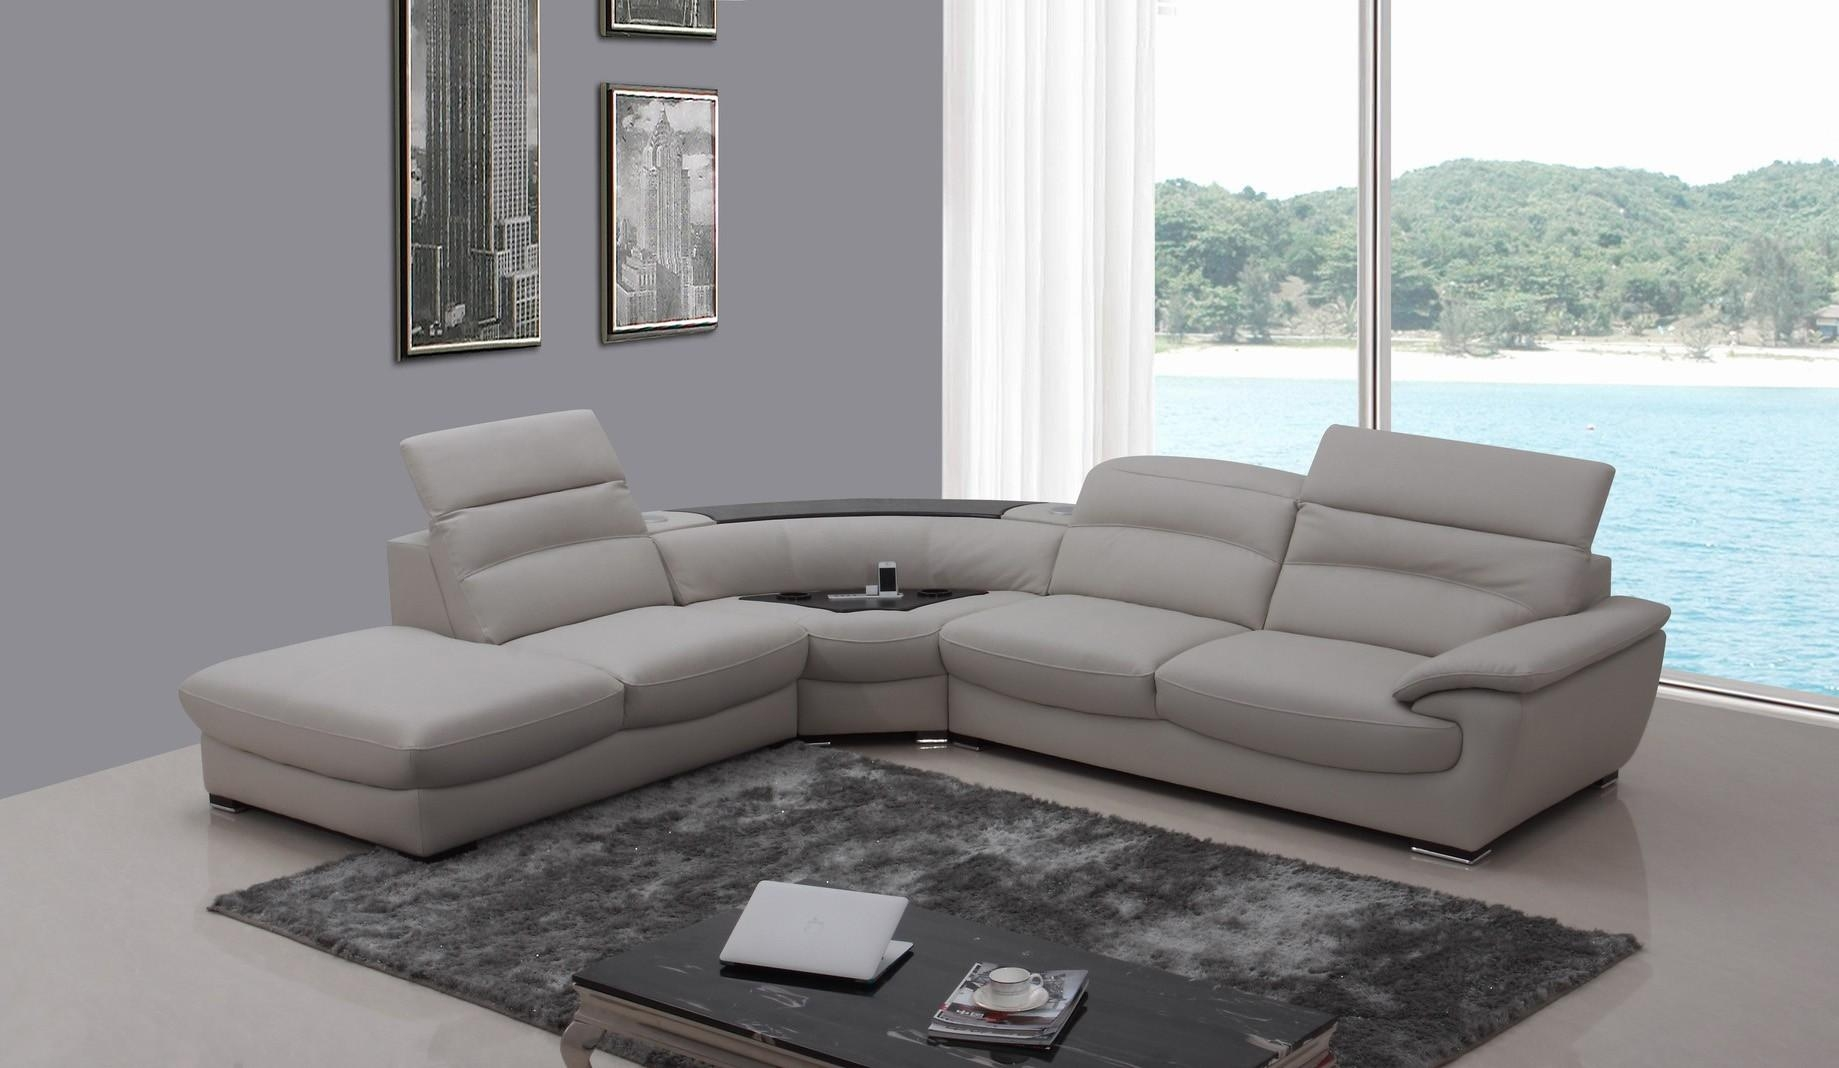 Sofas Center : Italian Leather Sectional Sofa Winston Contemporary Within Italian Leather Sectionals Contemporary (Image 19 of 20)